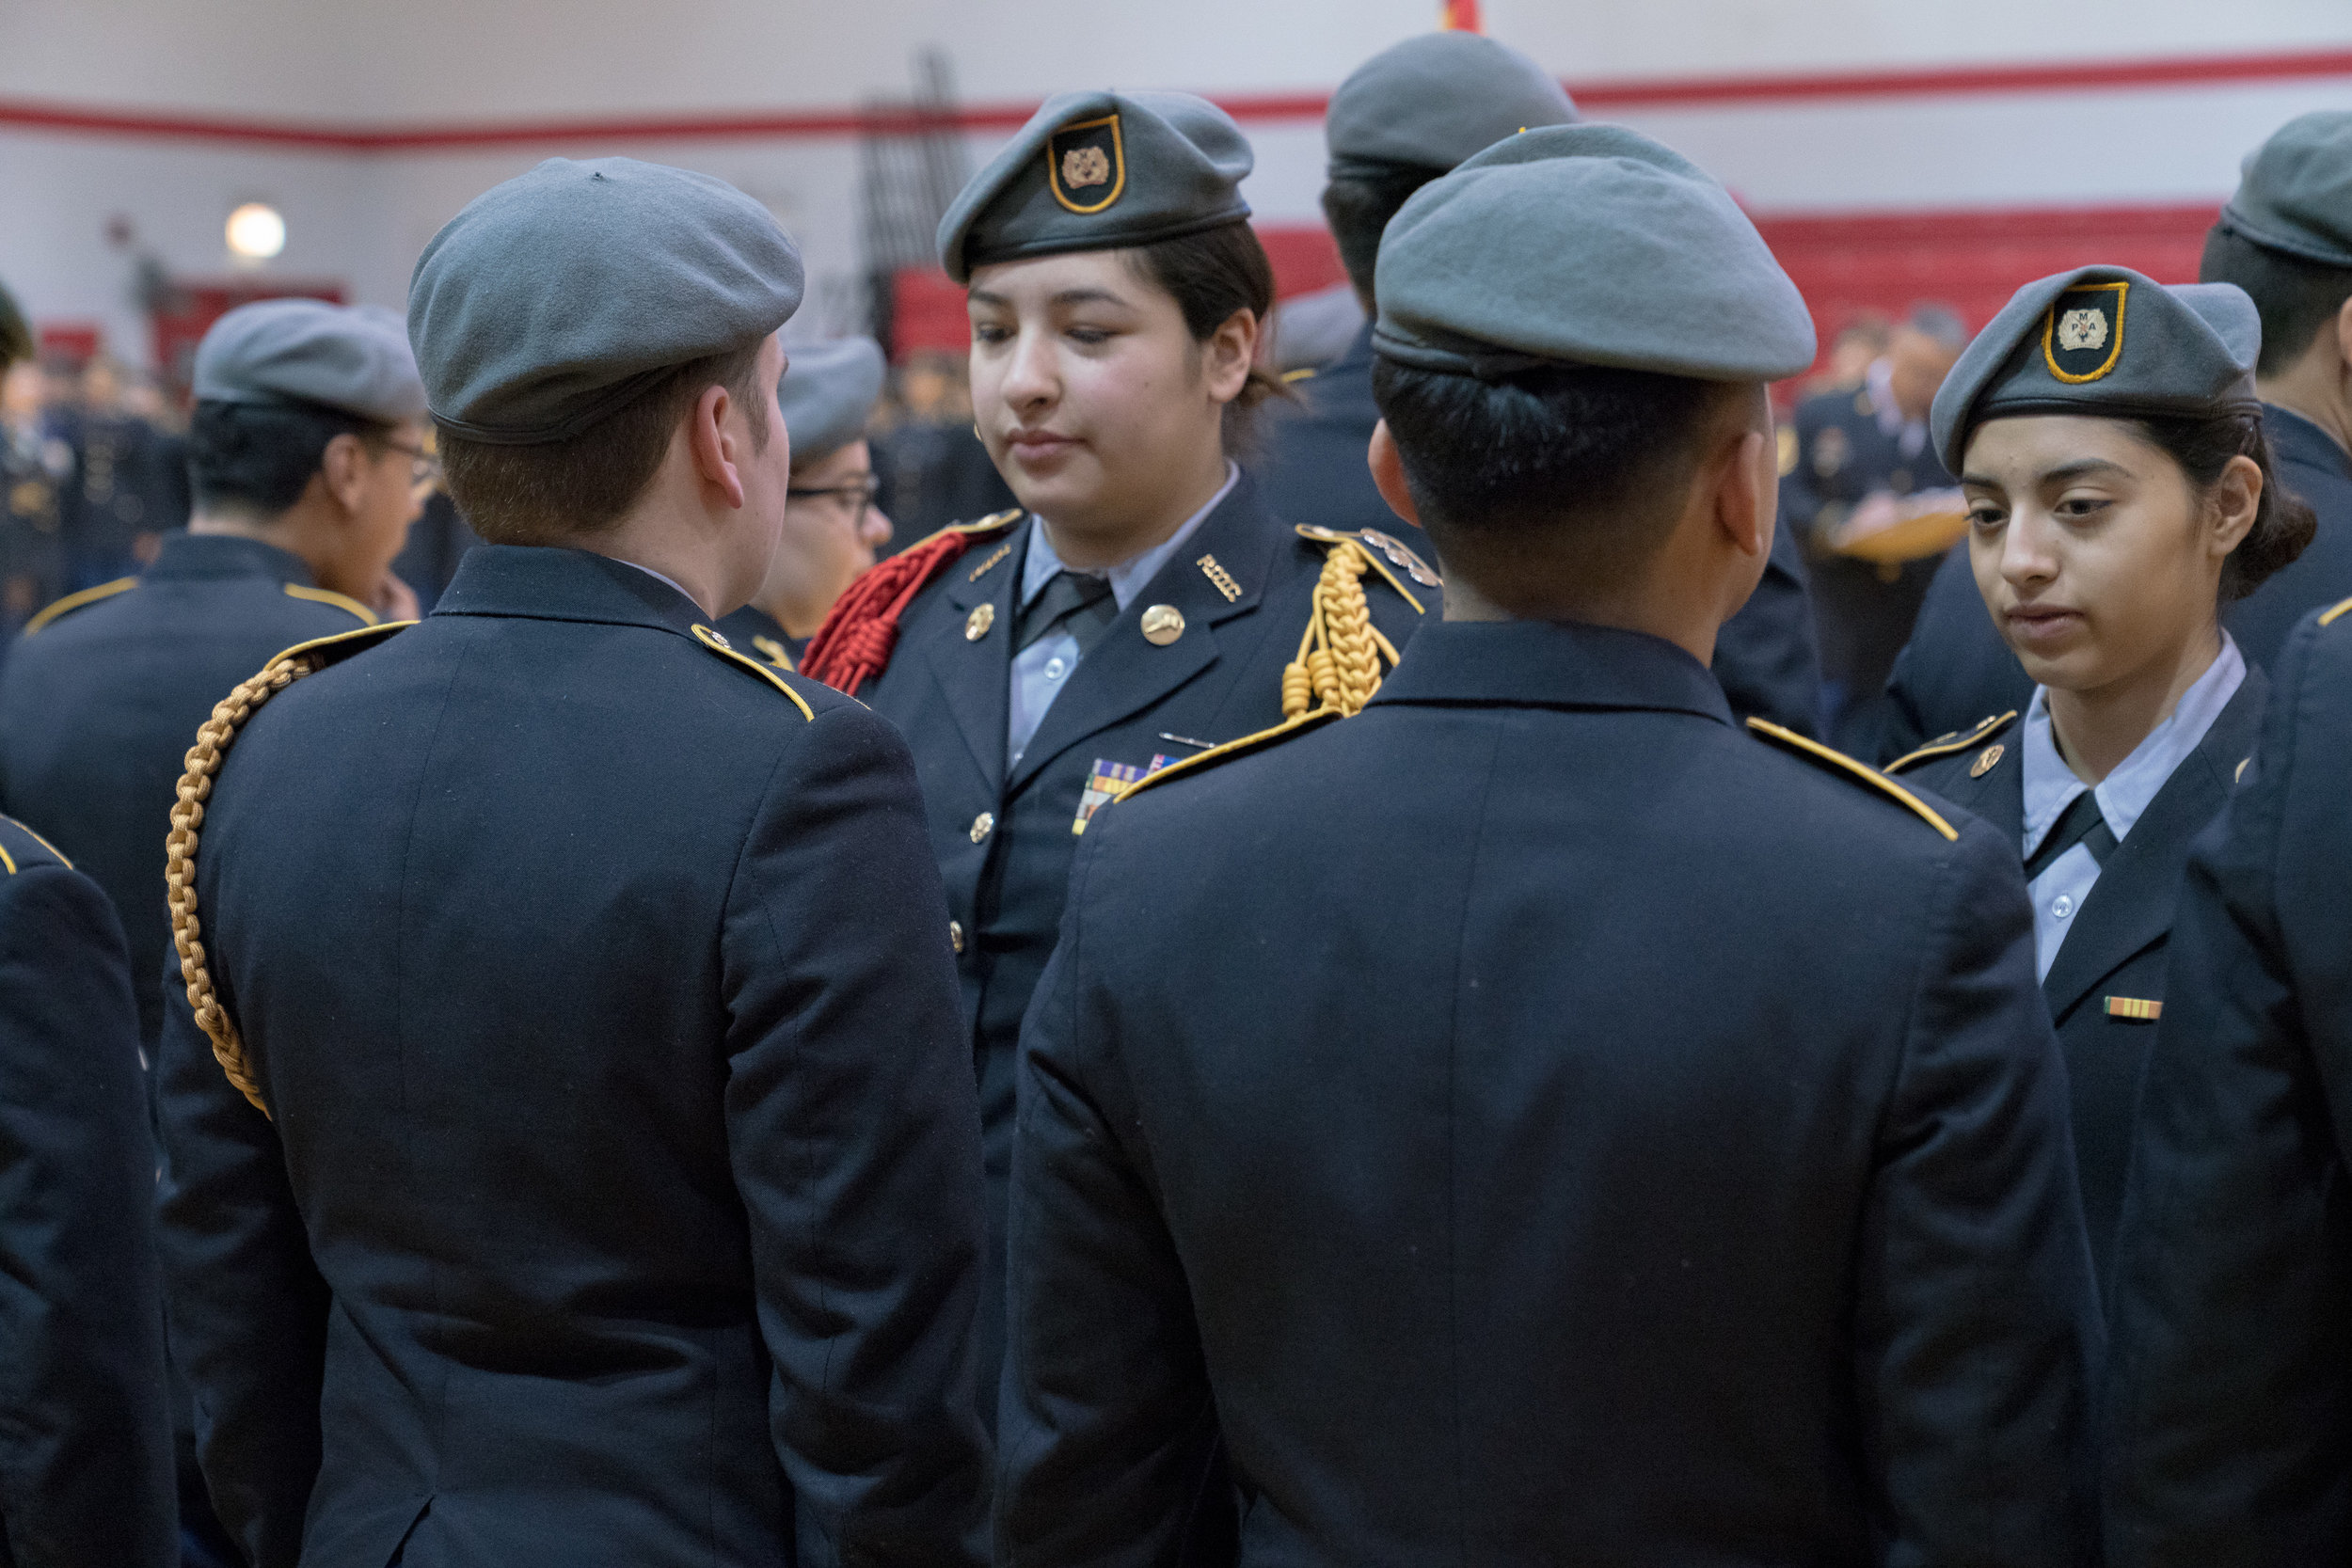 You never know who is in charge - 53% of cadets are young women